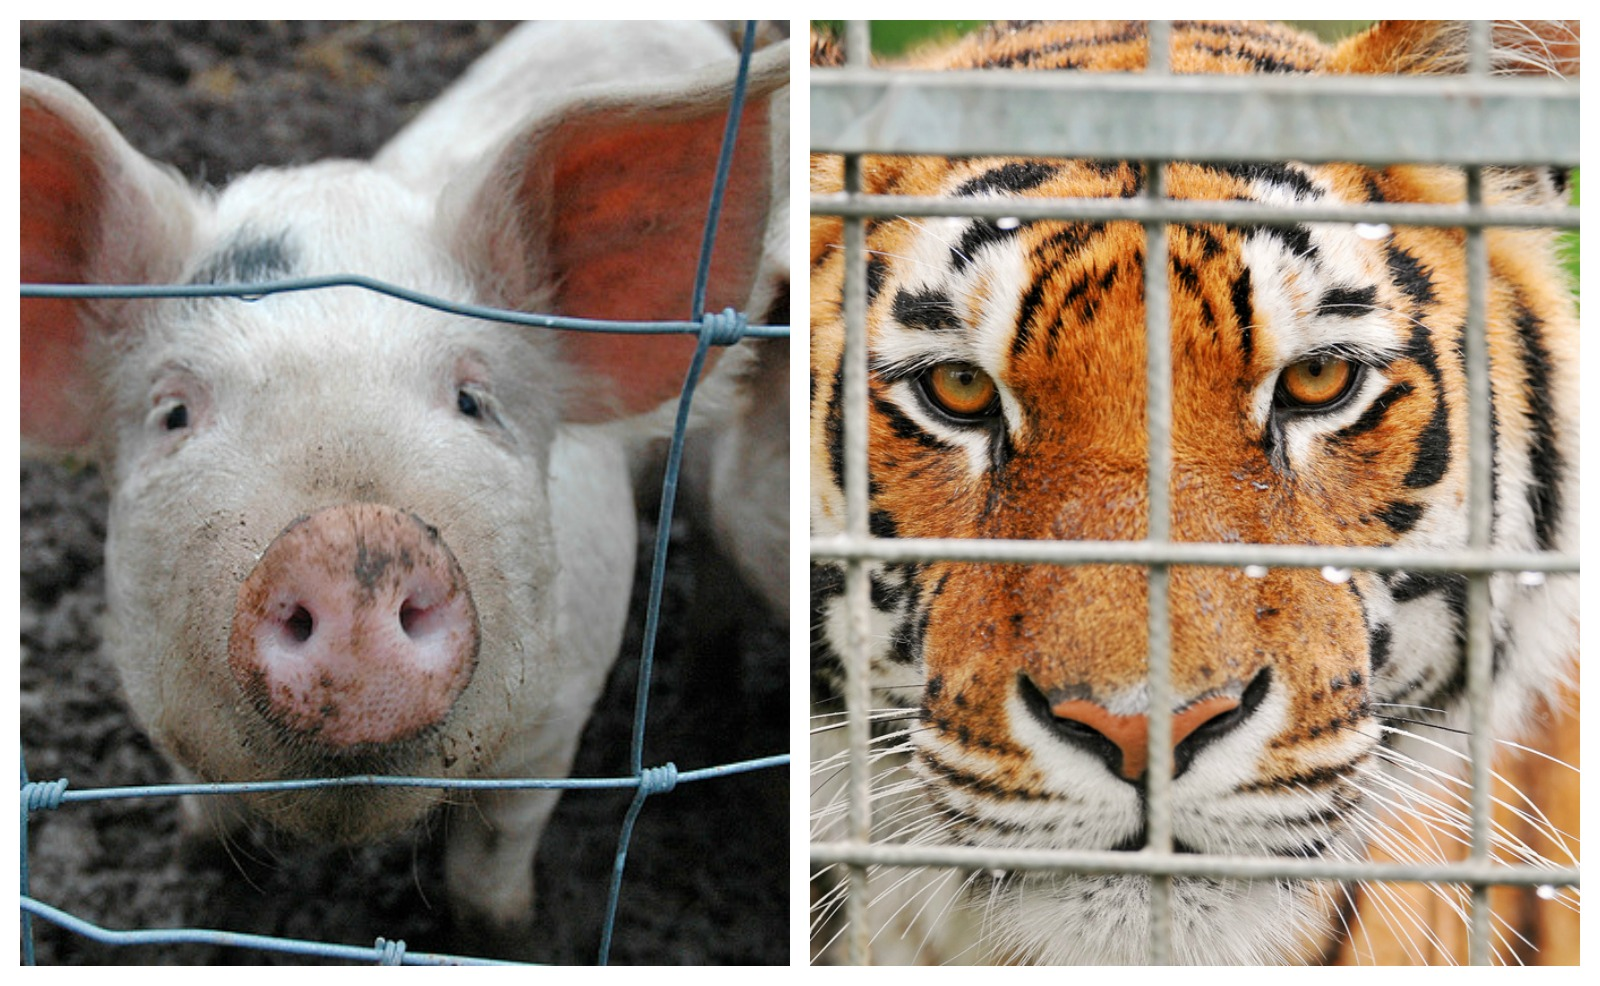 The Cost of Captivity: Similarities in How Farm and Zoo Animals Suffer